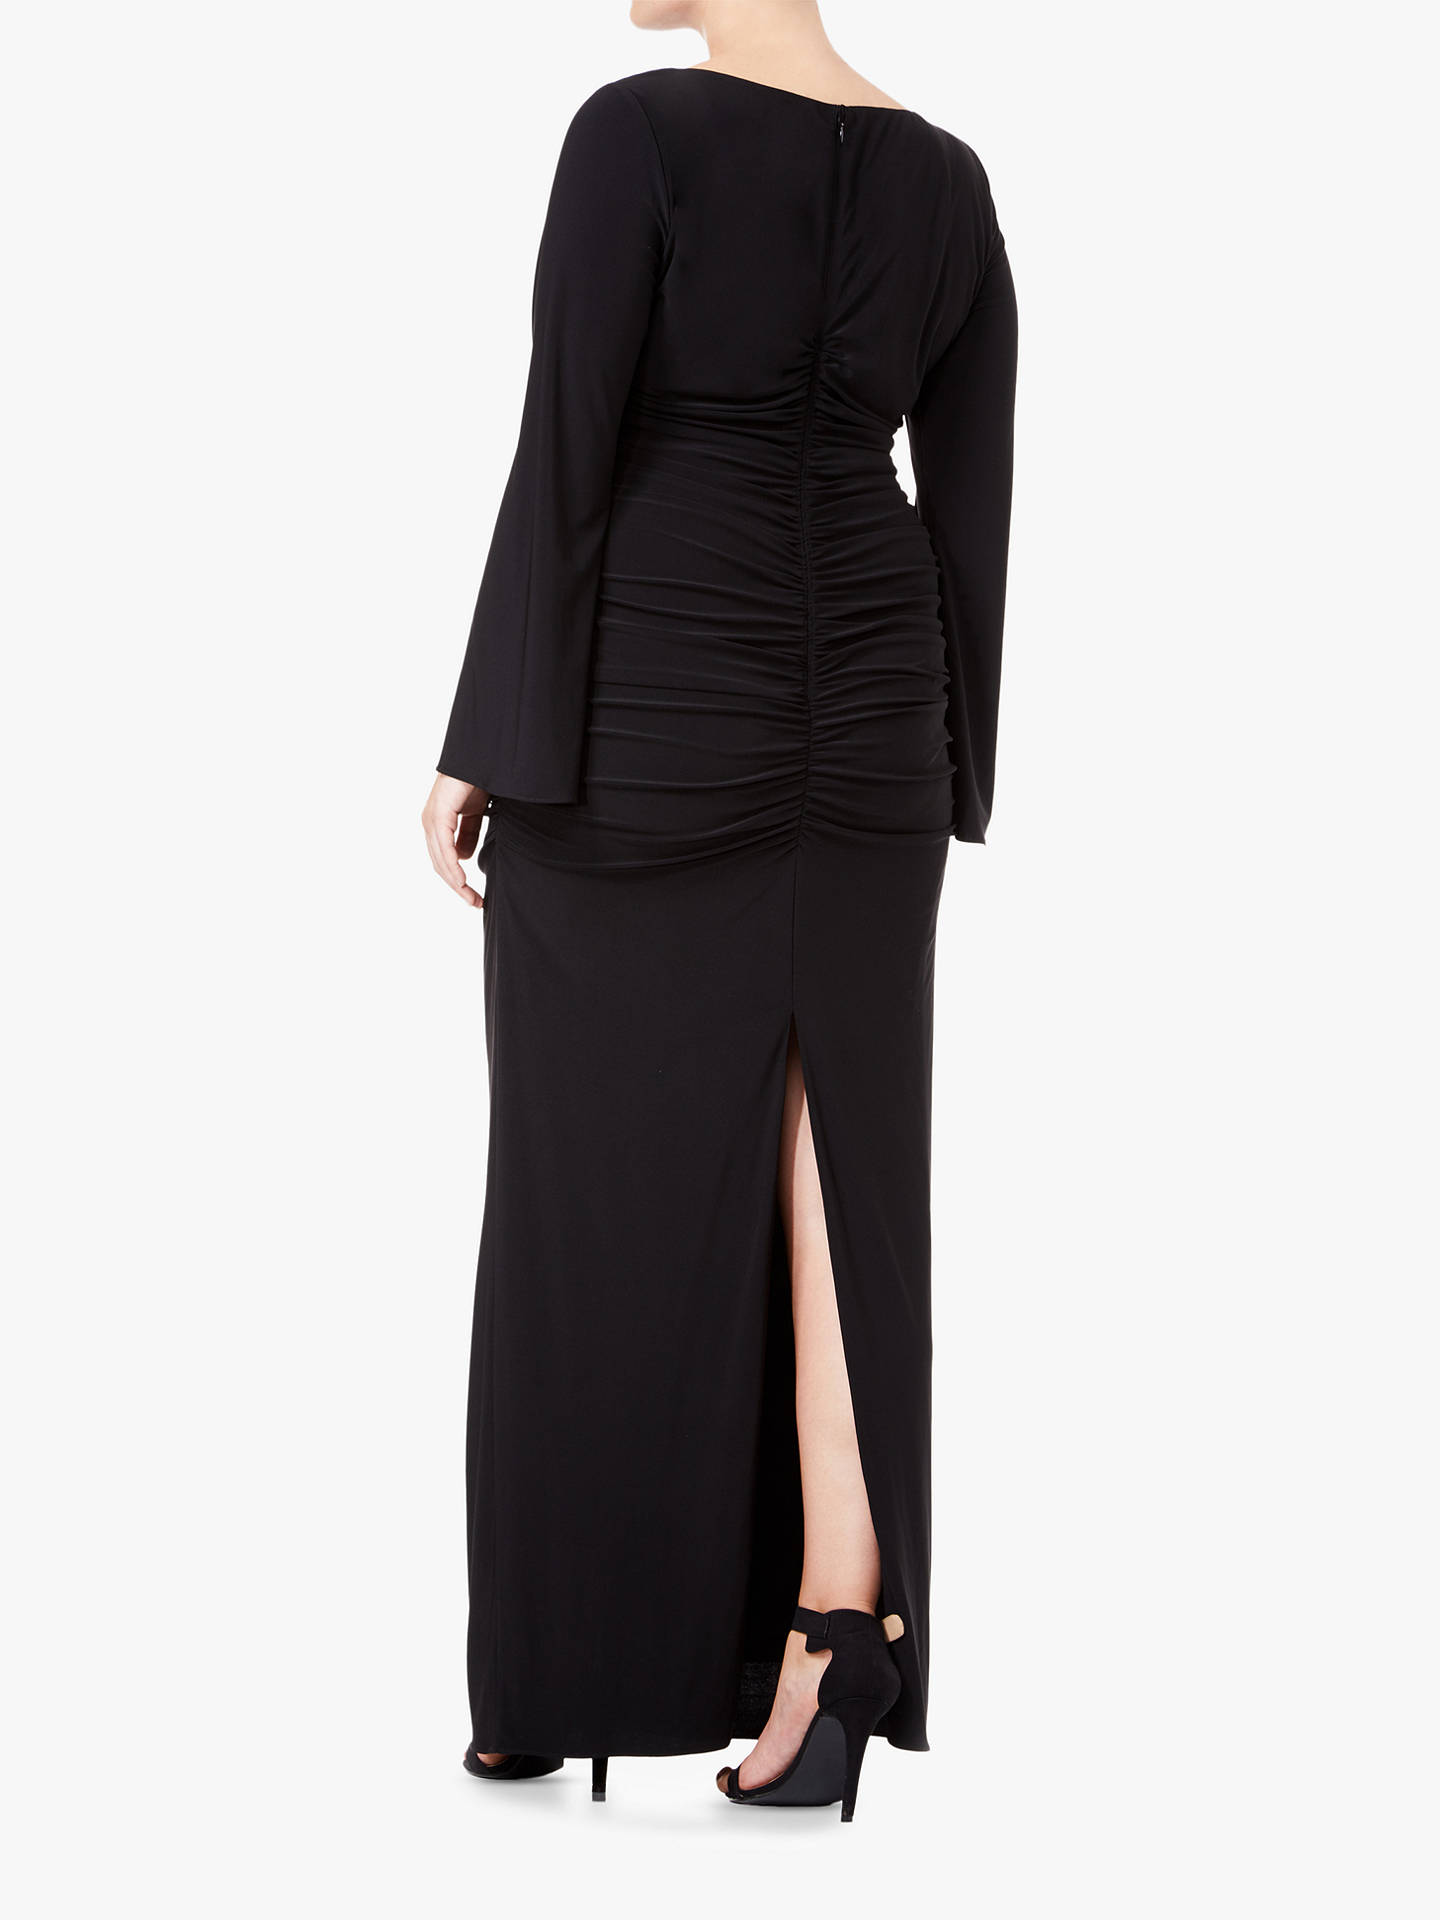 BuyAdrianna Papell Plus Size Embellished Jersey Maxi Dress, Black, 20 Online at johnlewis.com